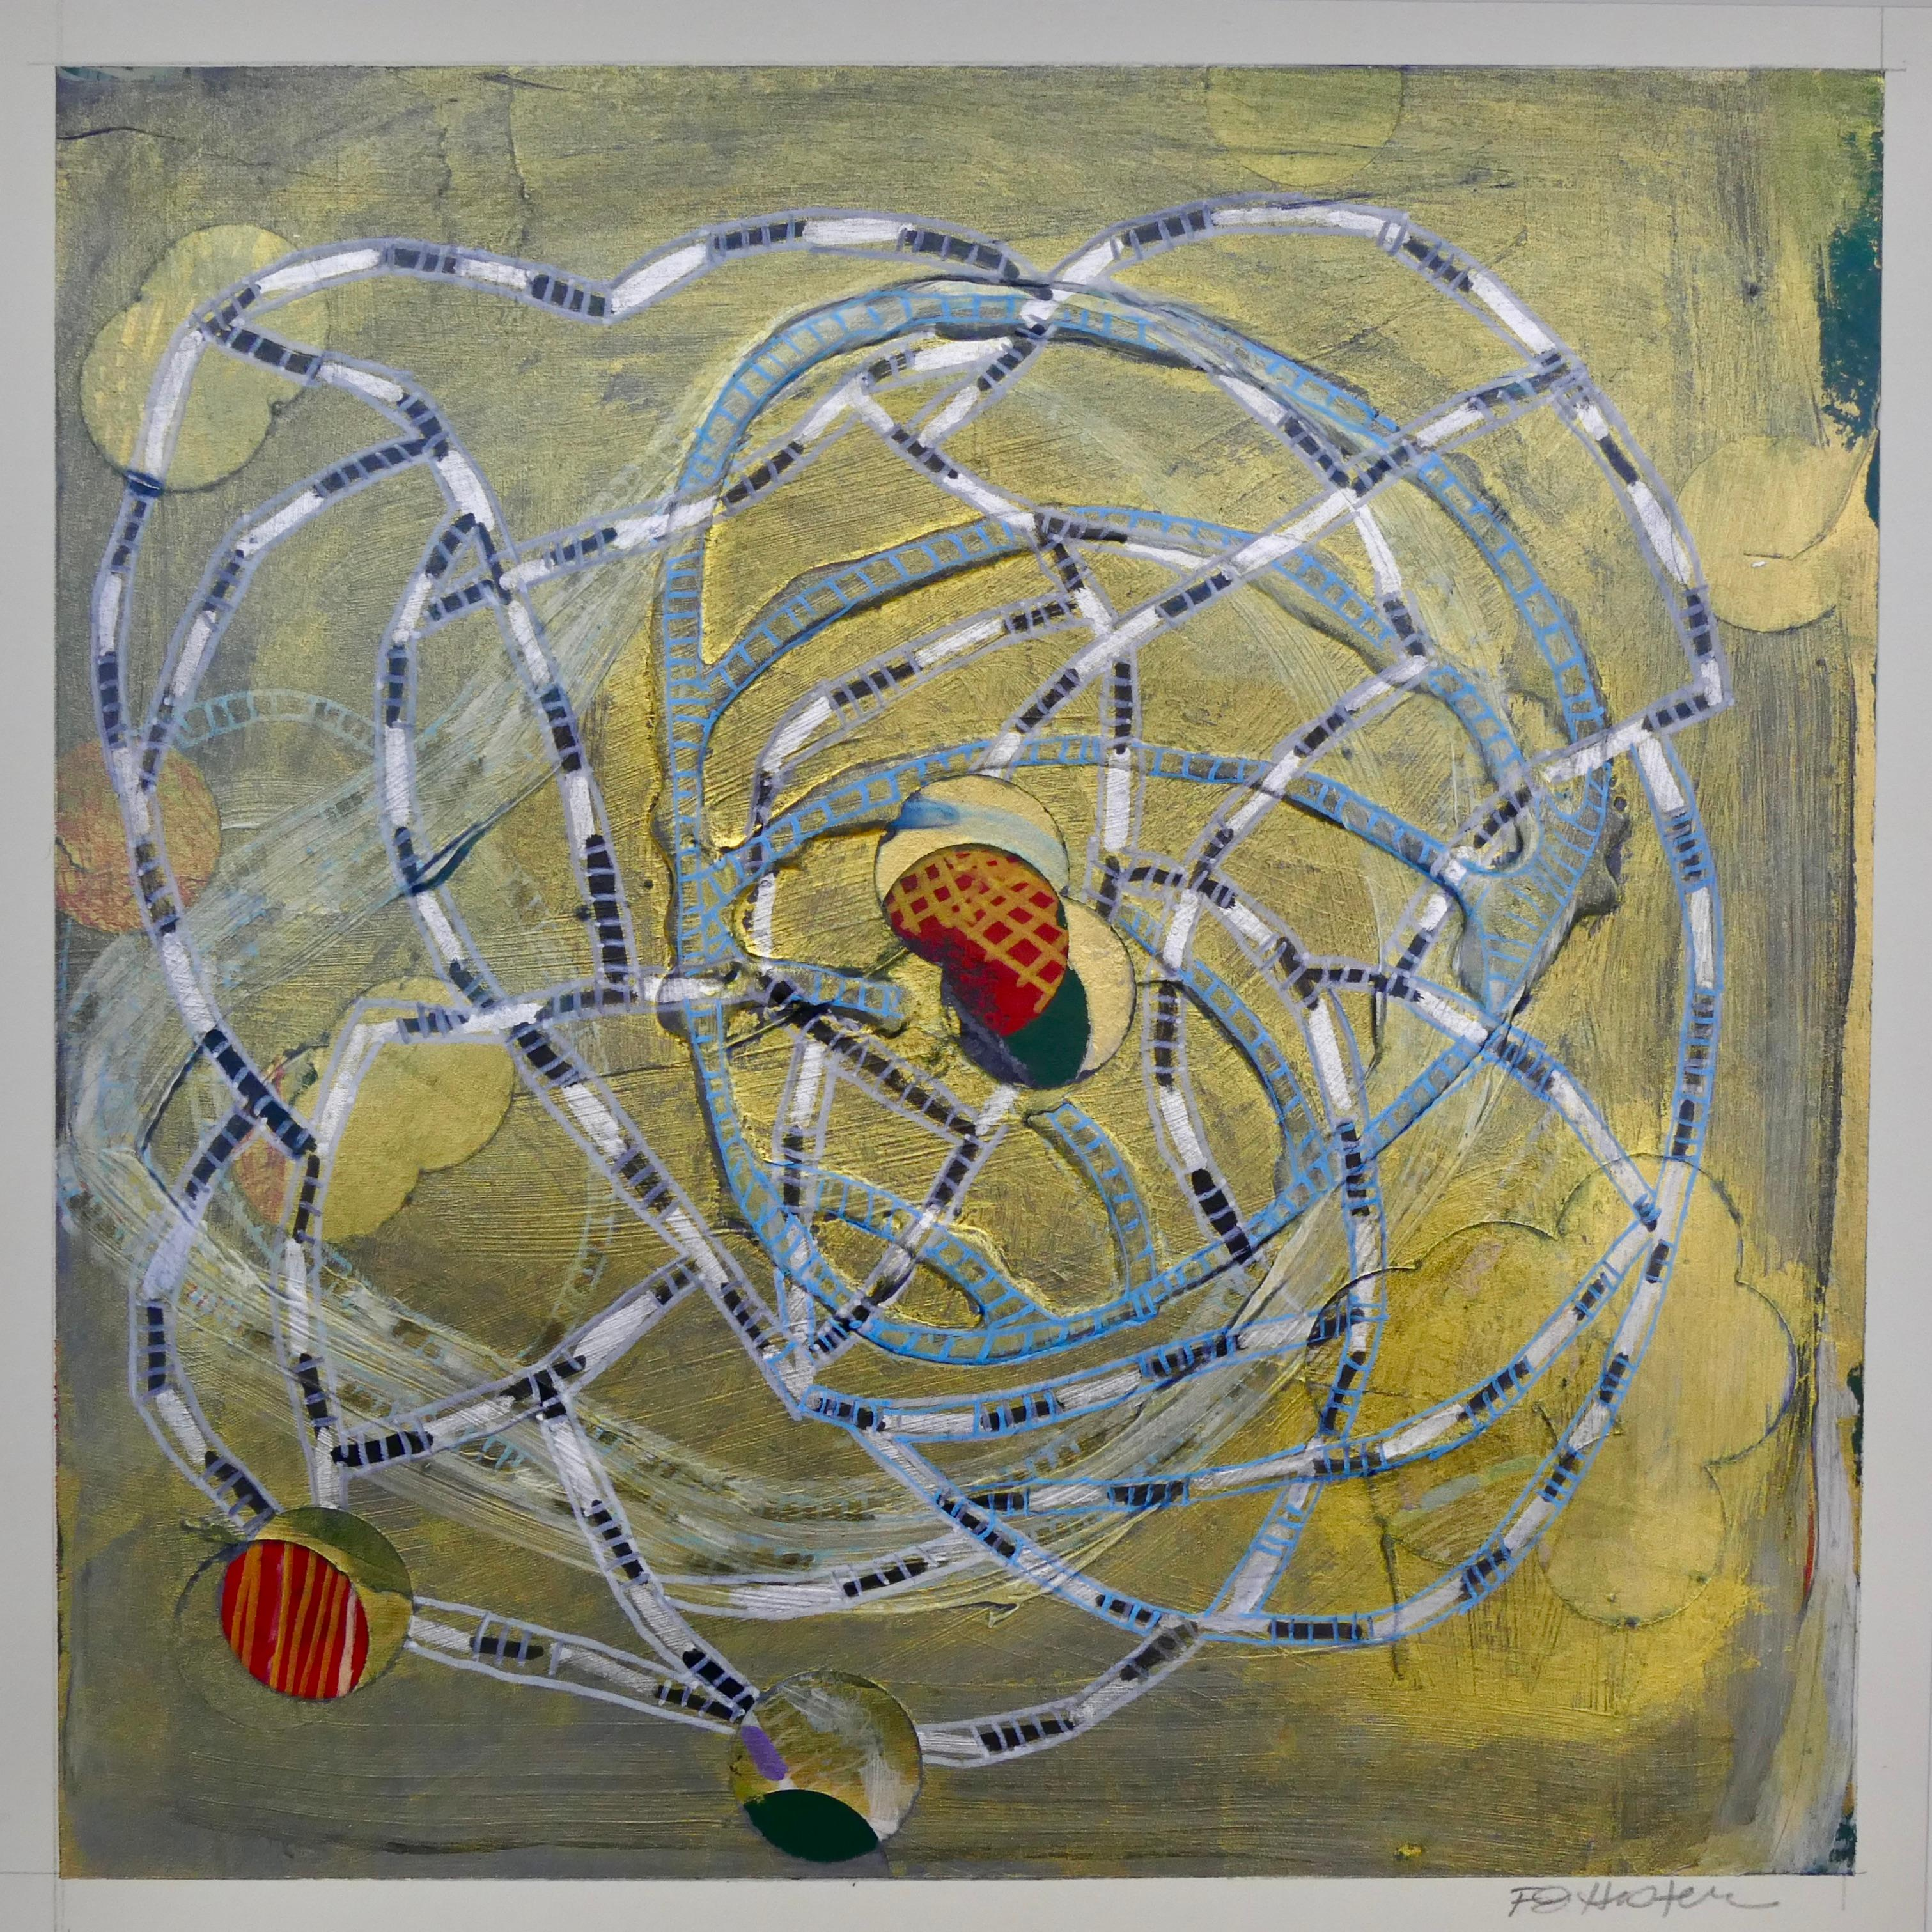 Intertwined 20-2, small mixed media work on paper, yellow and silver